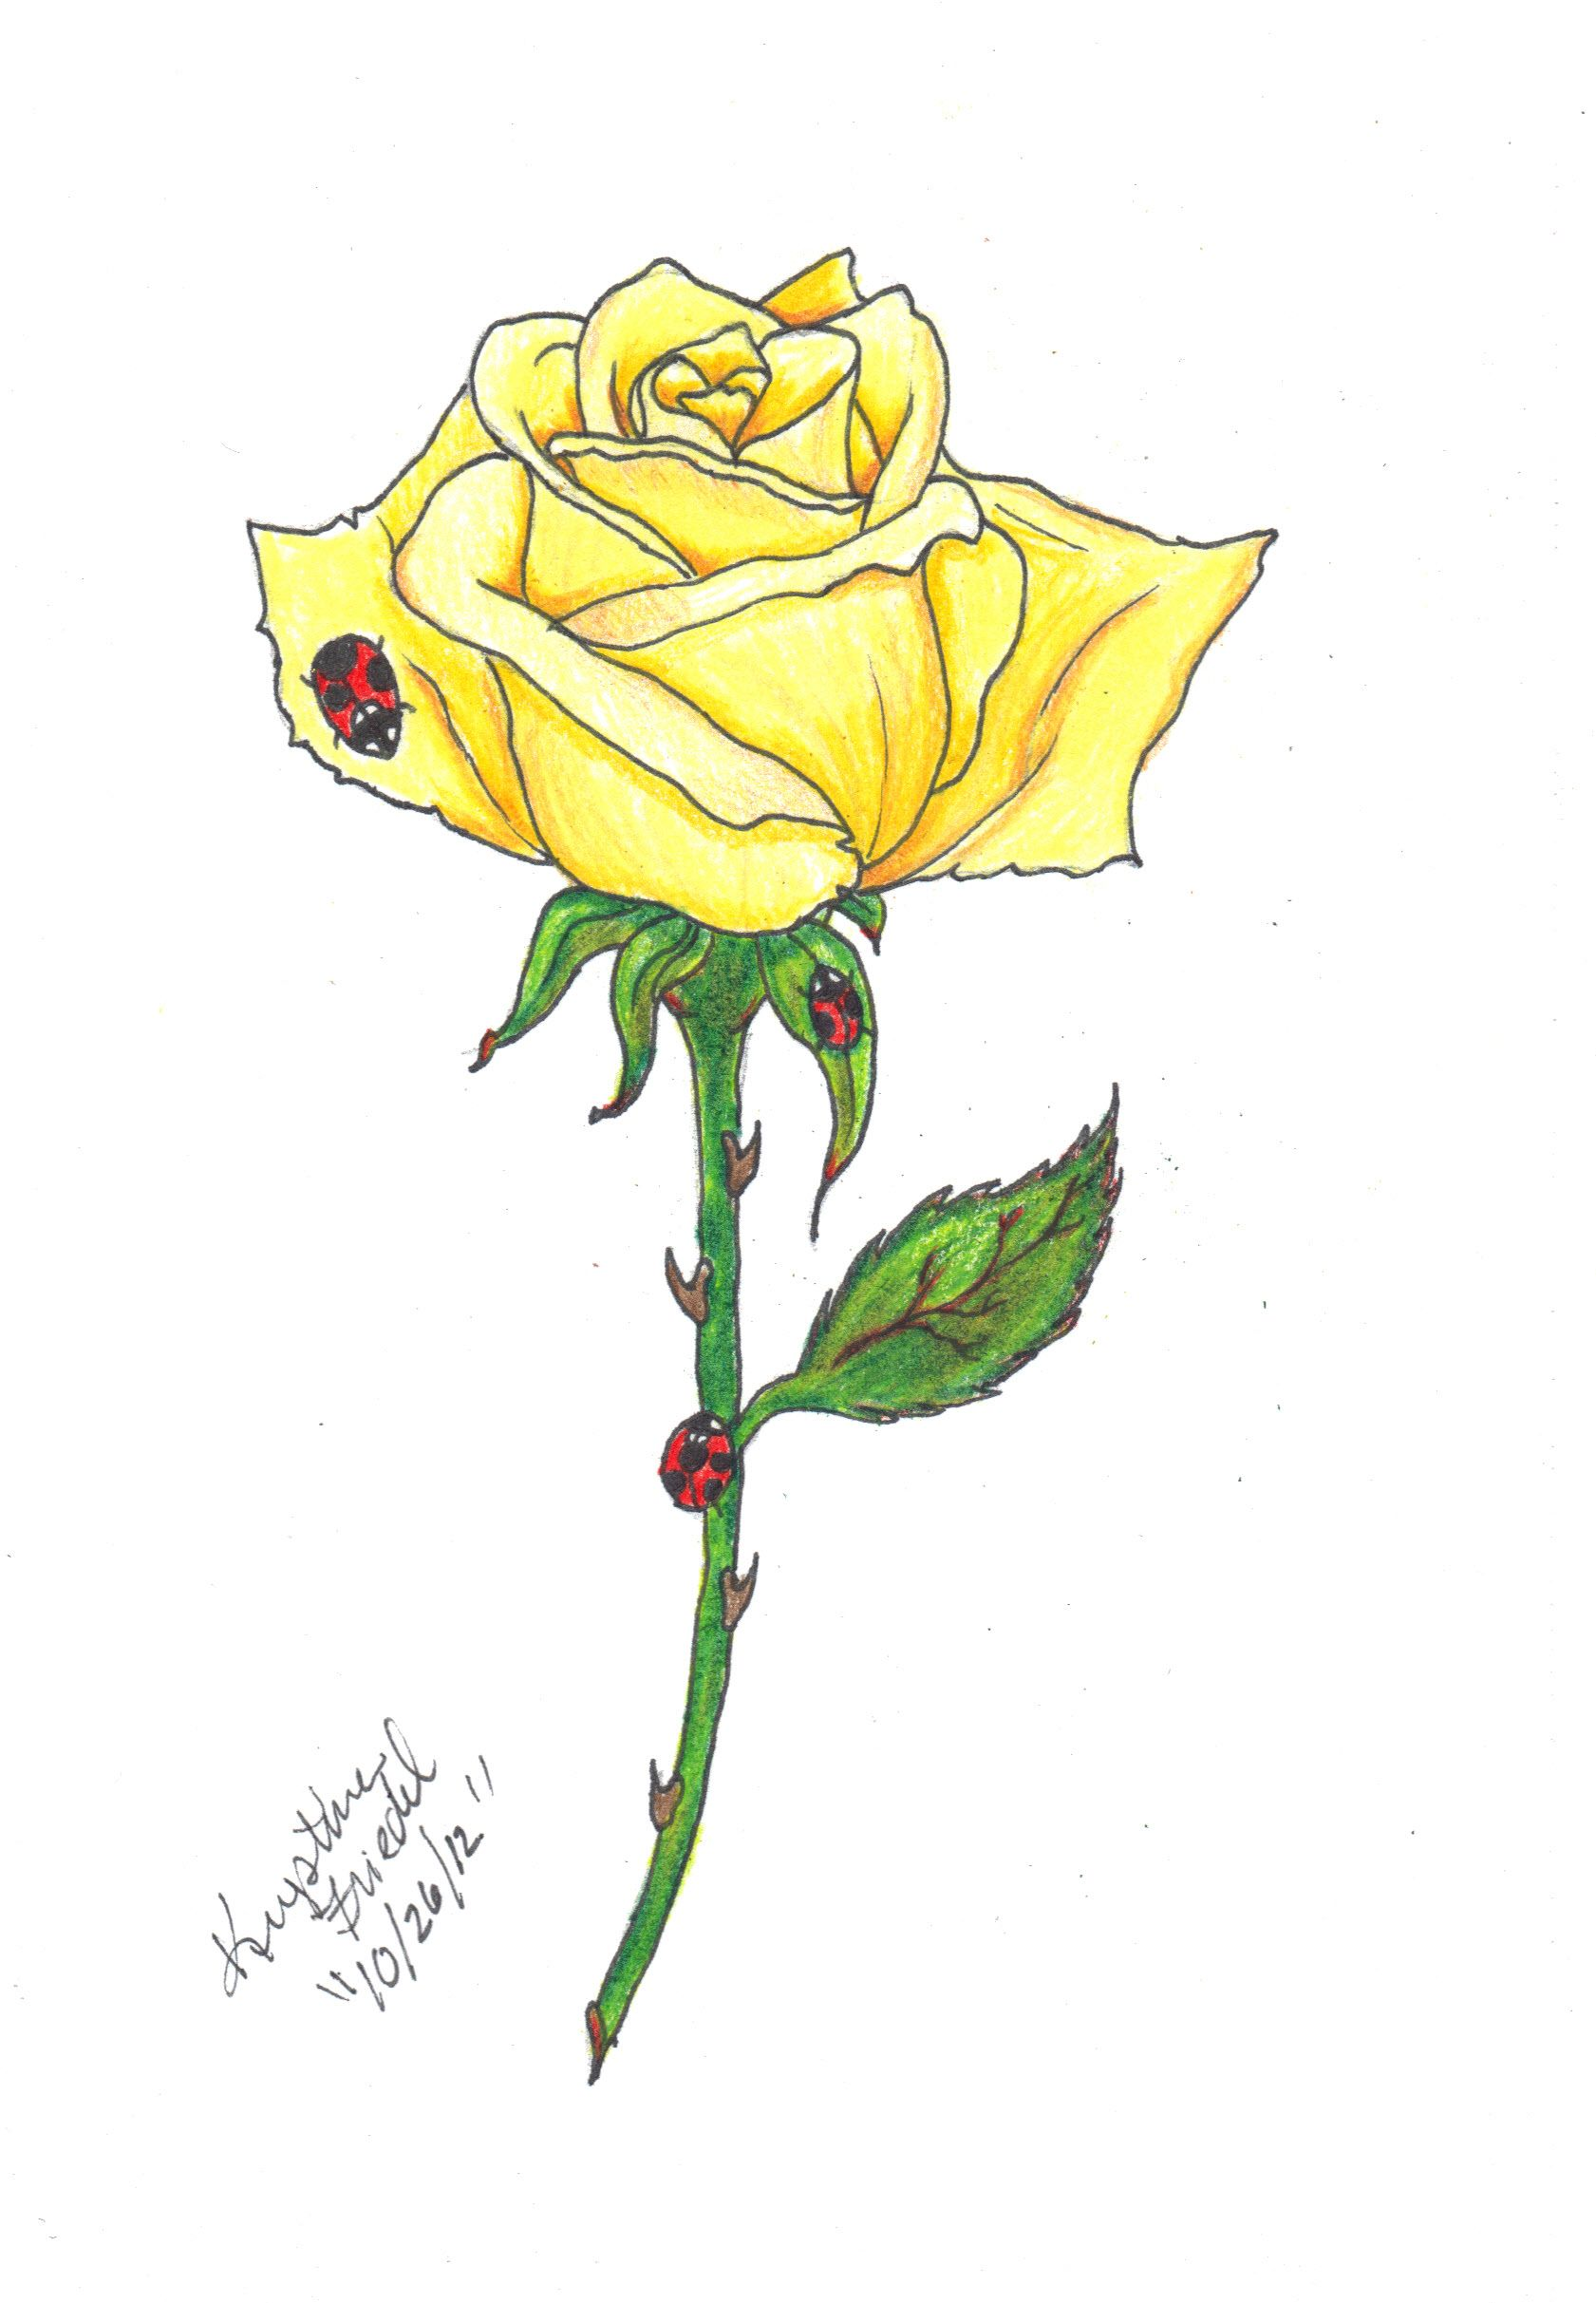 Yellow rose yellow rose meaning yellow roses - Yellow Rose Commission For Tattoo